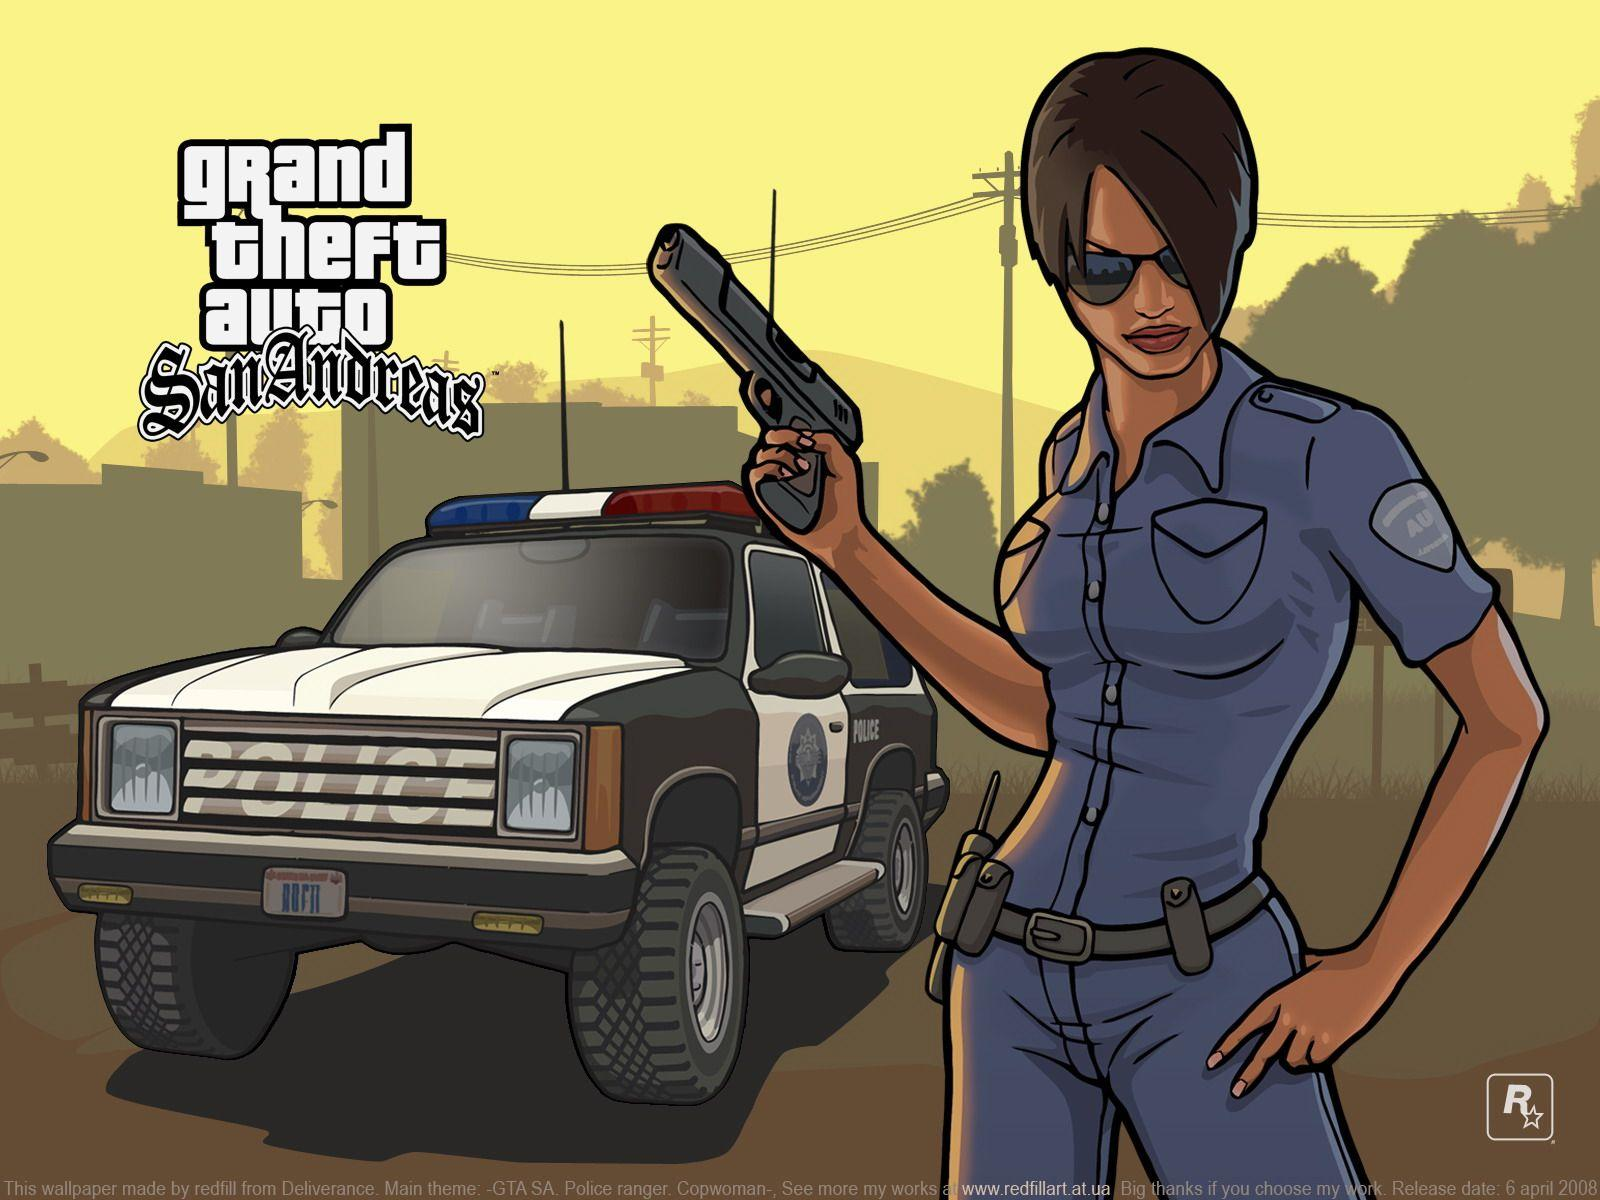 Gta San Andreas Hd Wallpaper Backgrounds Game 2017 Of Desktop High